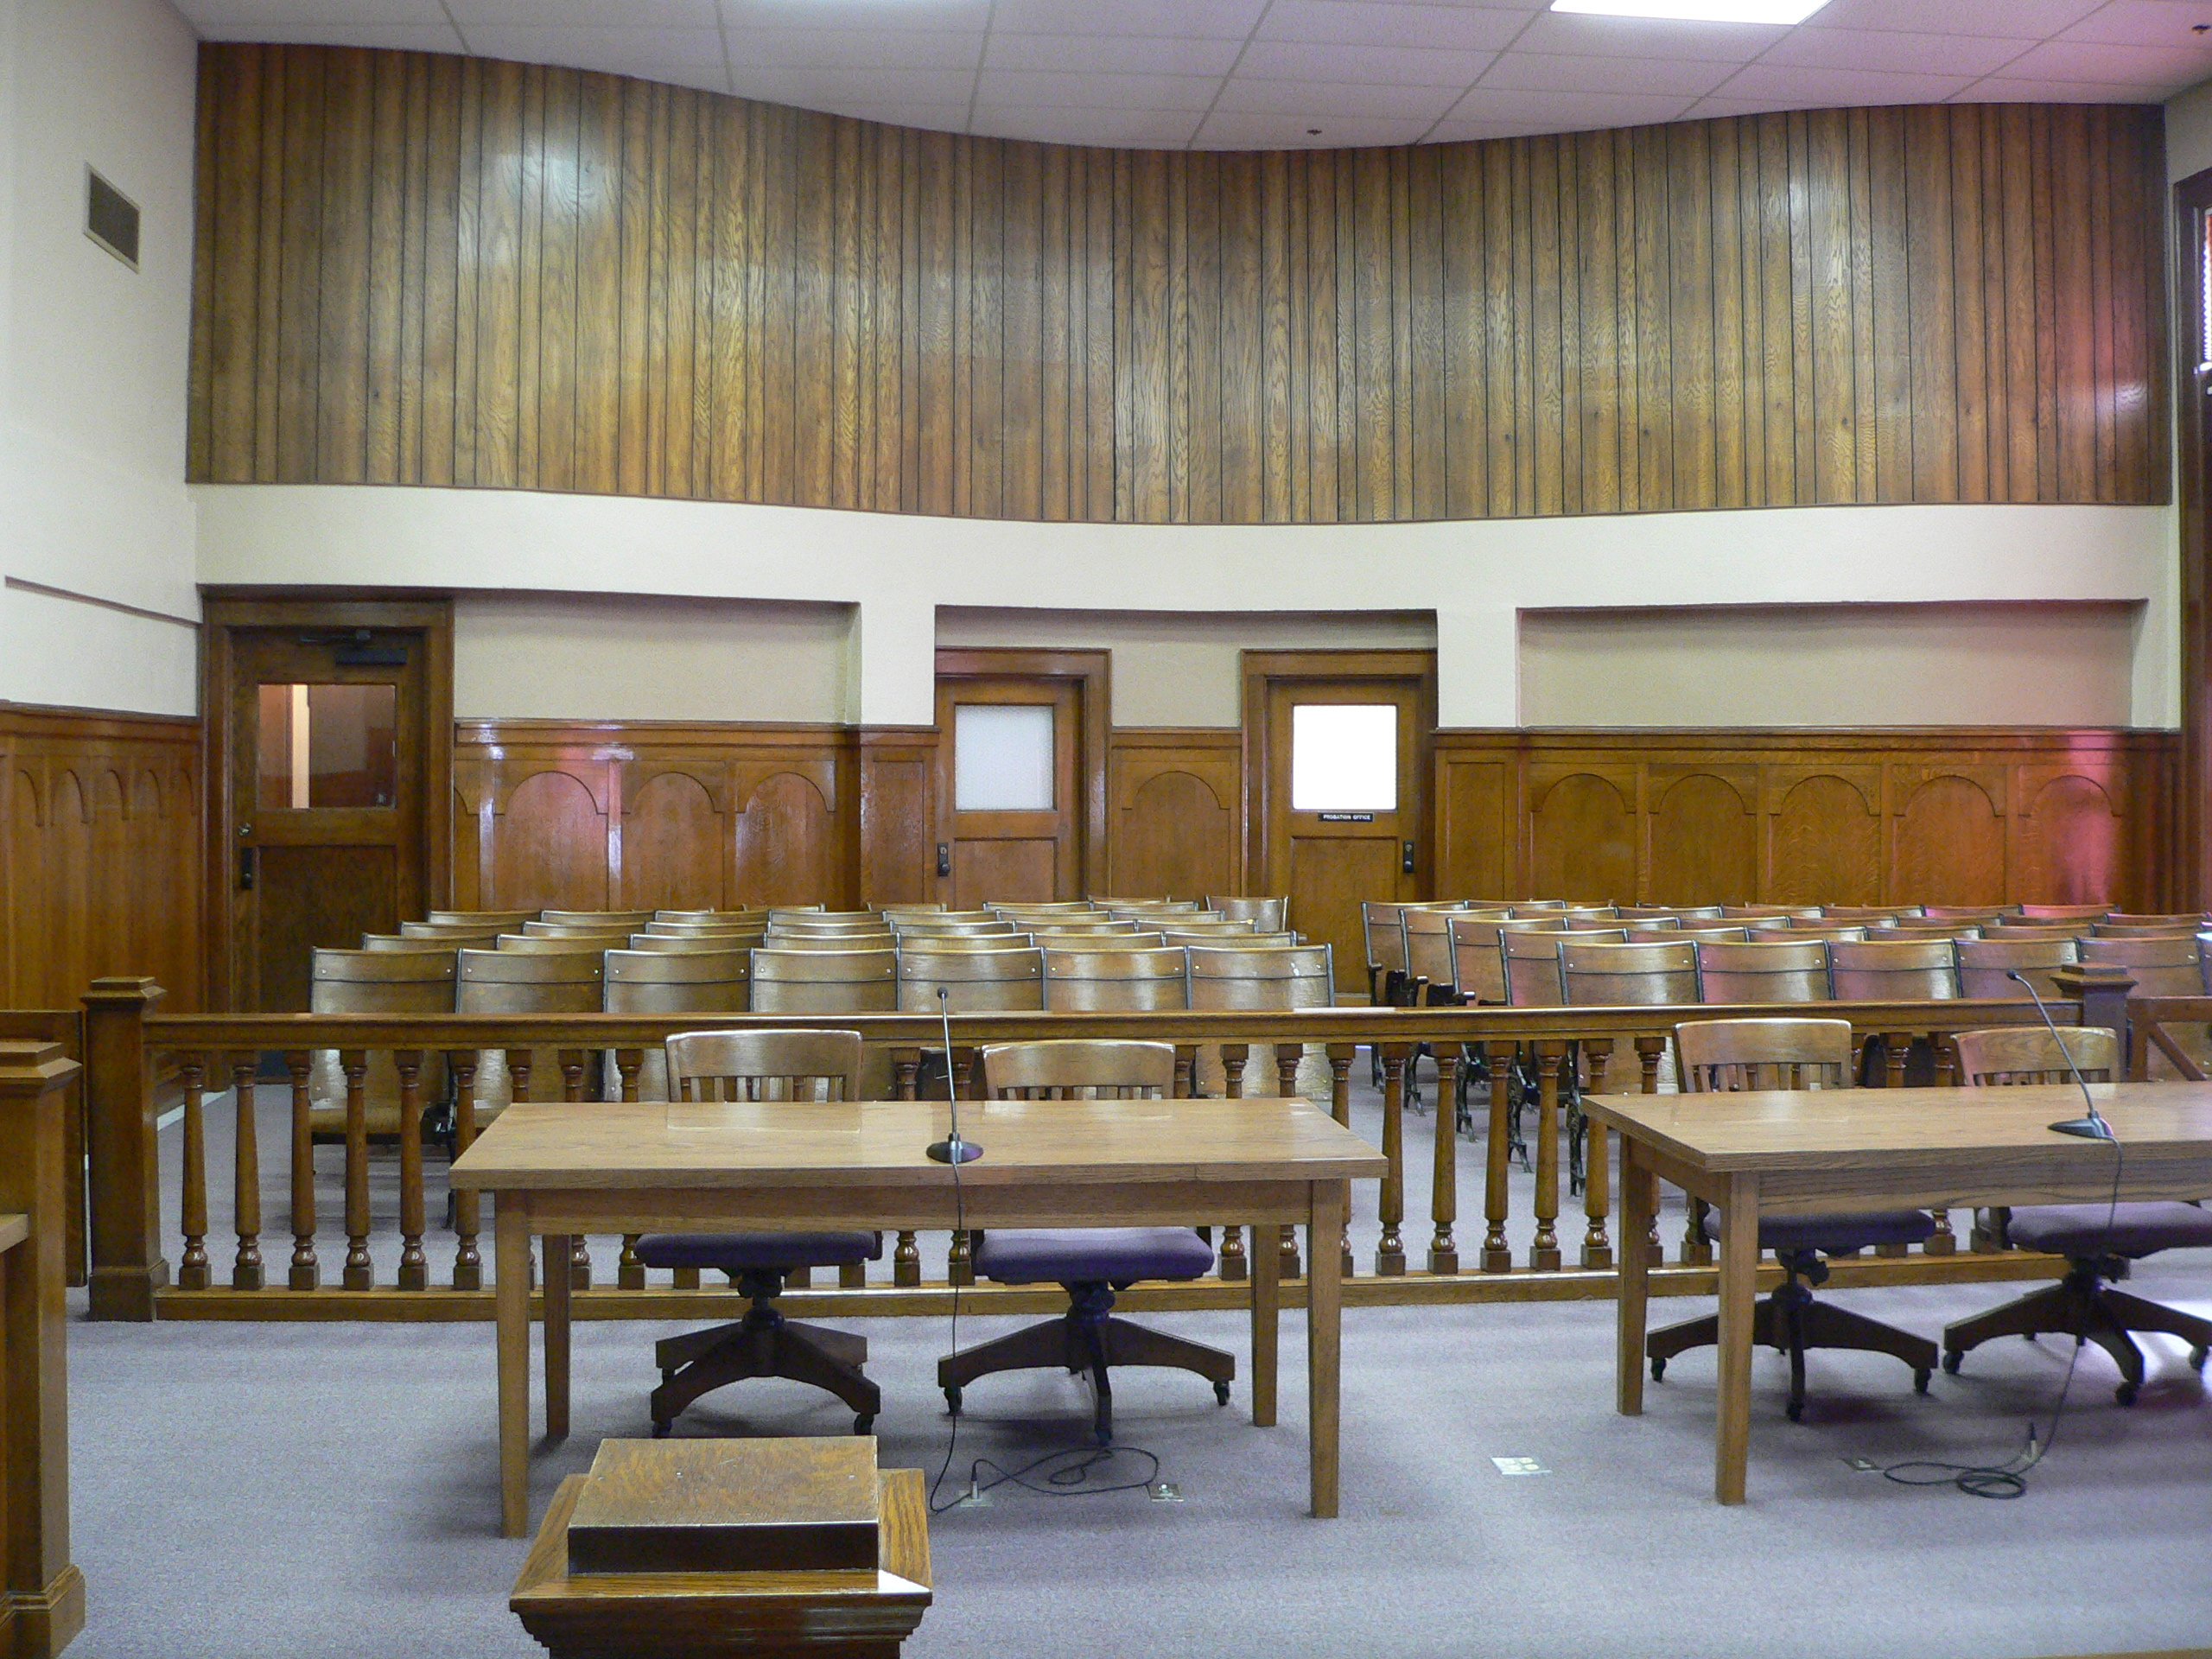 Courtroom in Phelps County Courthouse in Holdrege, Nebraska